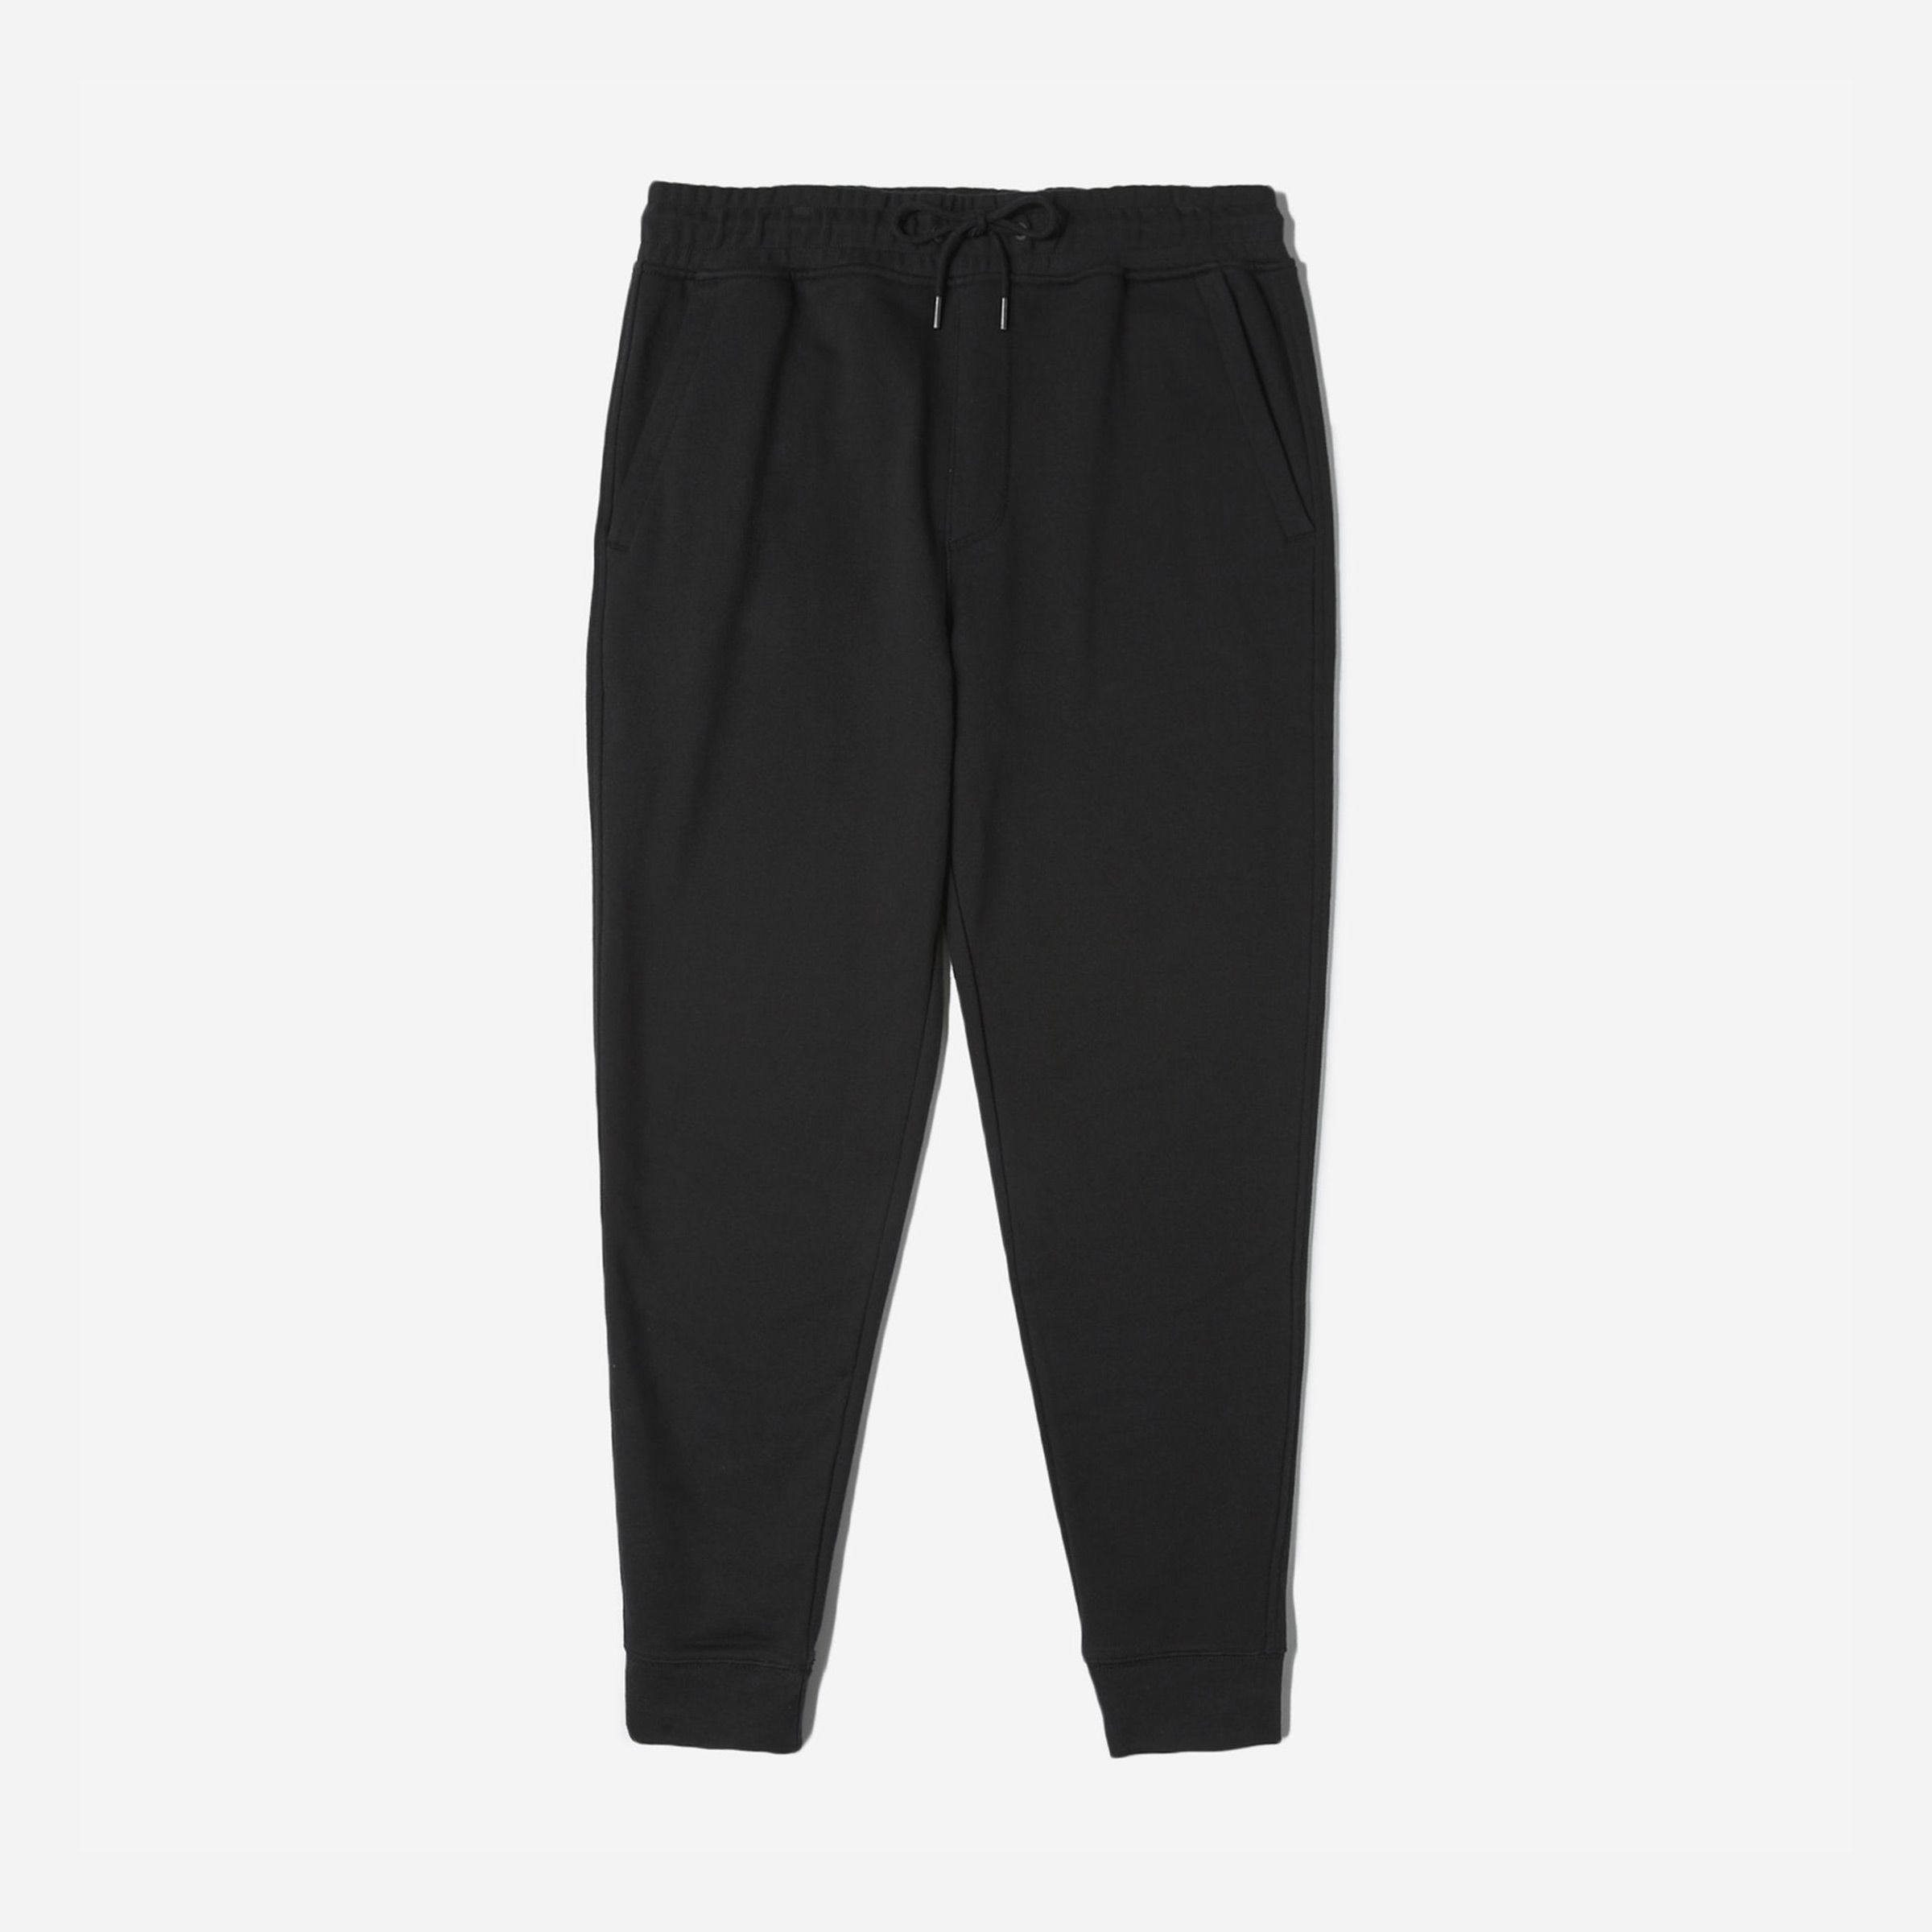 a6cbbe602d63d7 The 12 Best Men s Sweatpants of 2018 - Best Sweatpants for Men